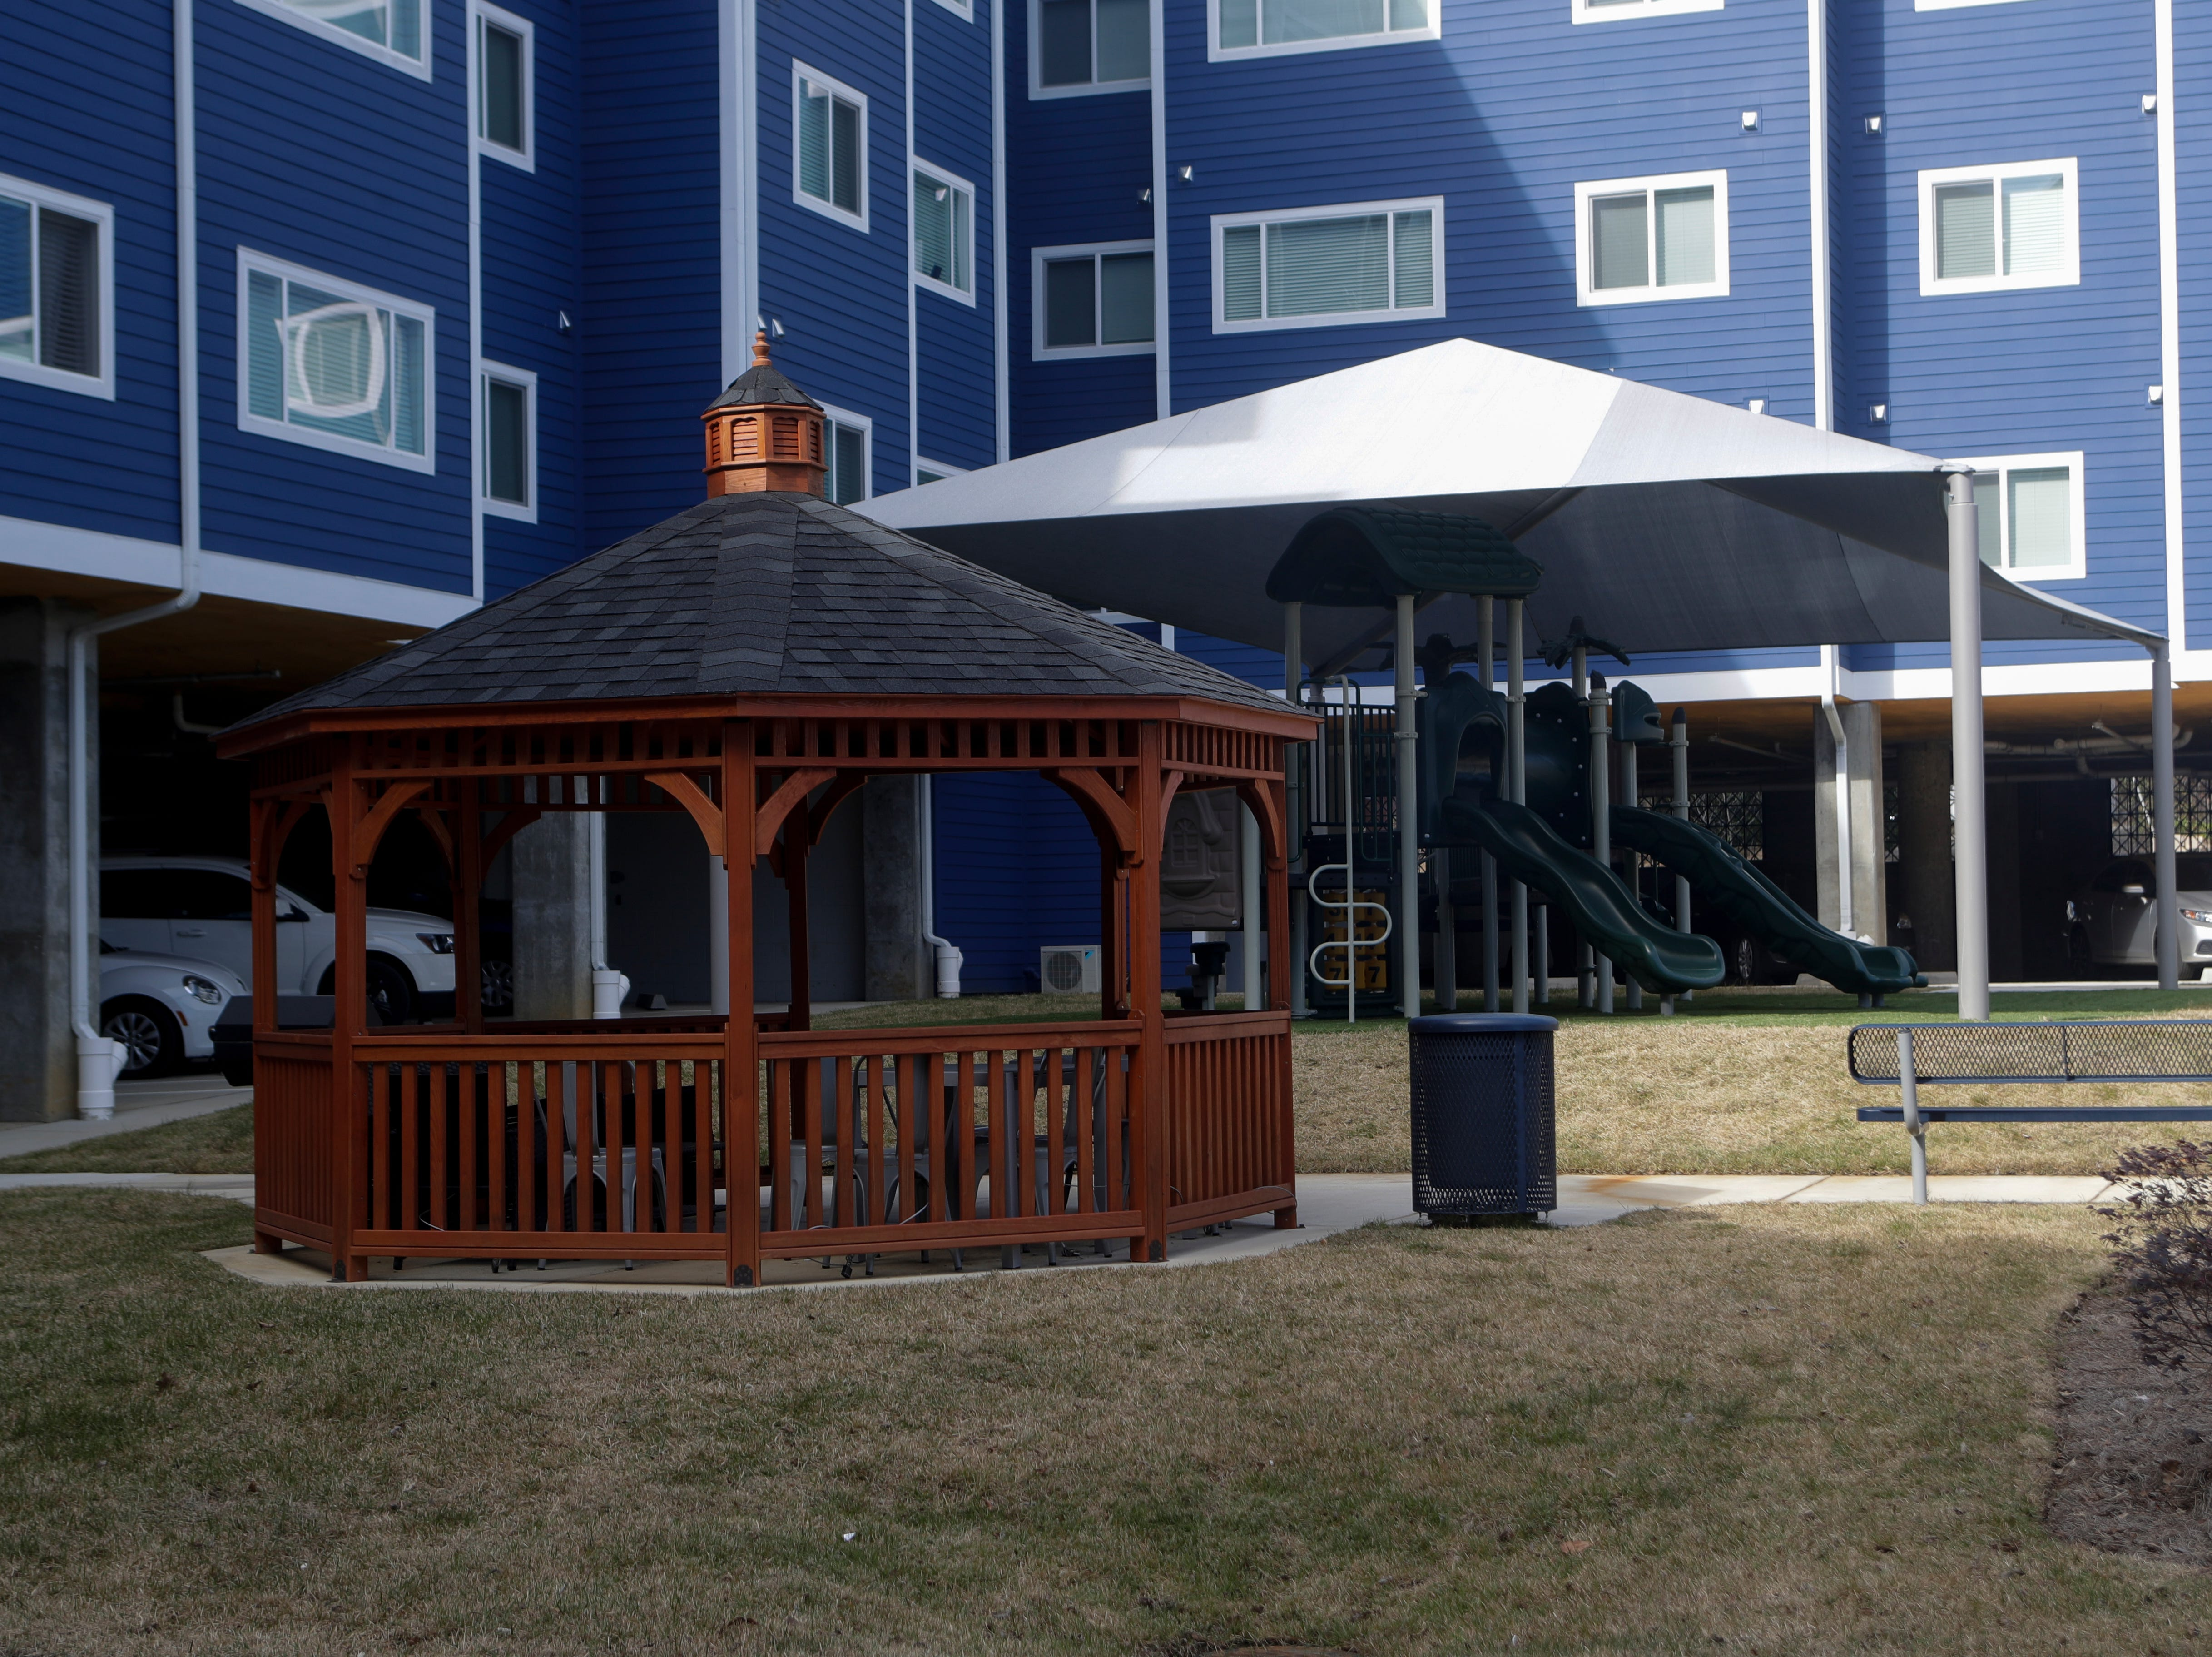 A covered gazebo, playground and bbq picnic area are some of the amenities at Casañas Village Apartments at Frenchtown Square.